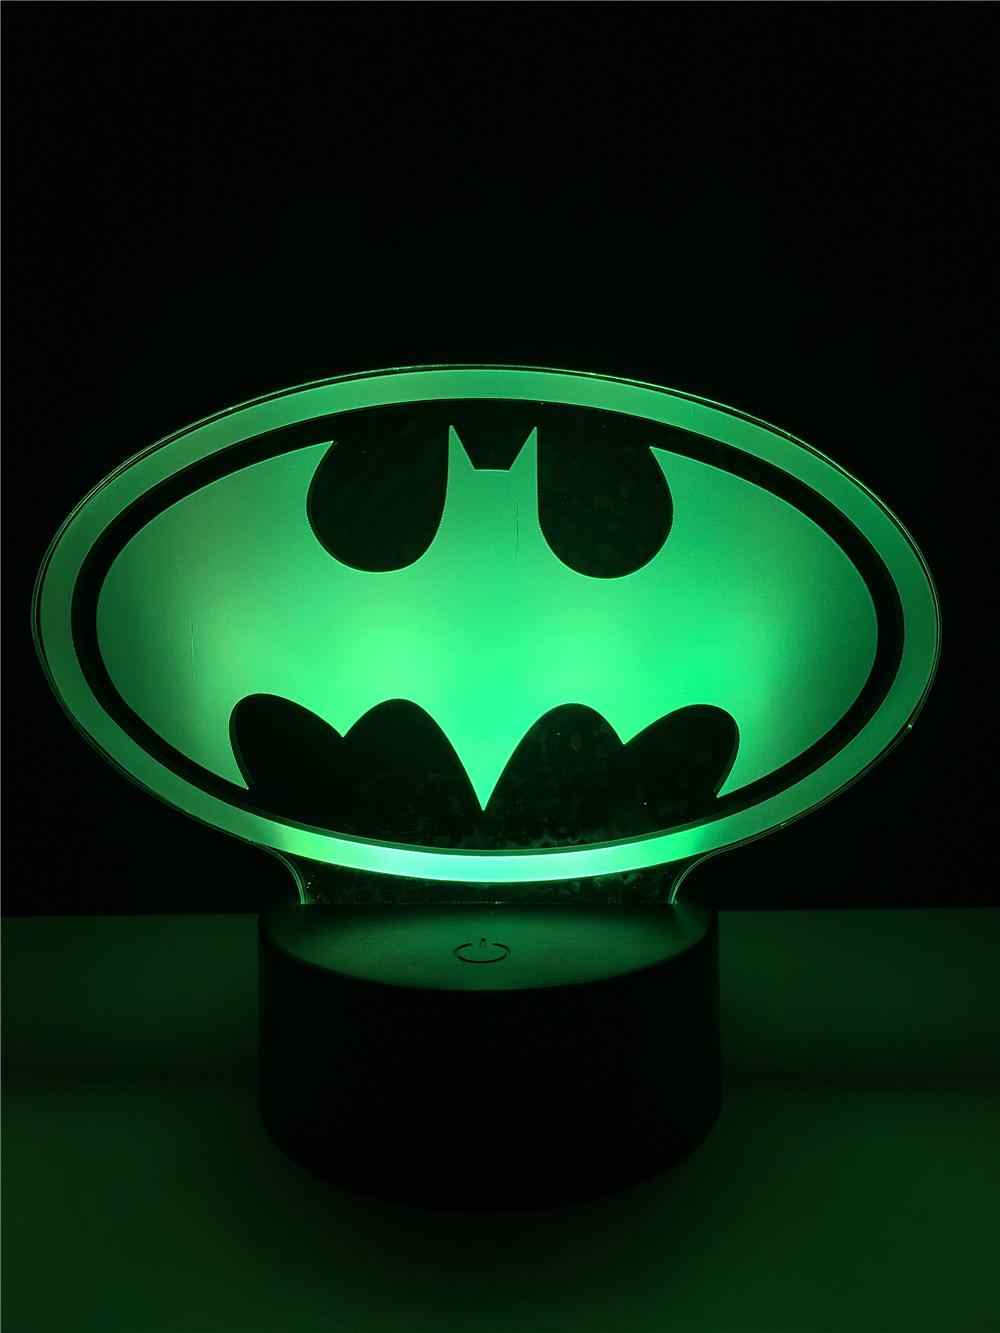 Cool Marvel Batman Logo Bat Lamp Night Light Multicolor Bedroom Decorative Usb Led Table Lighting